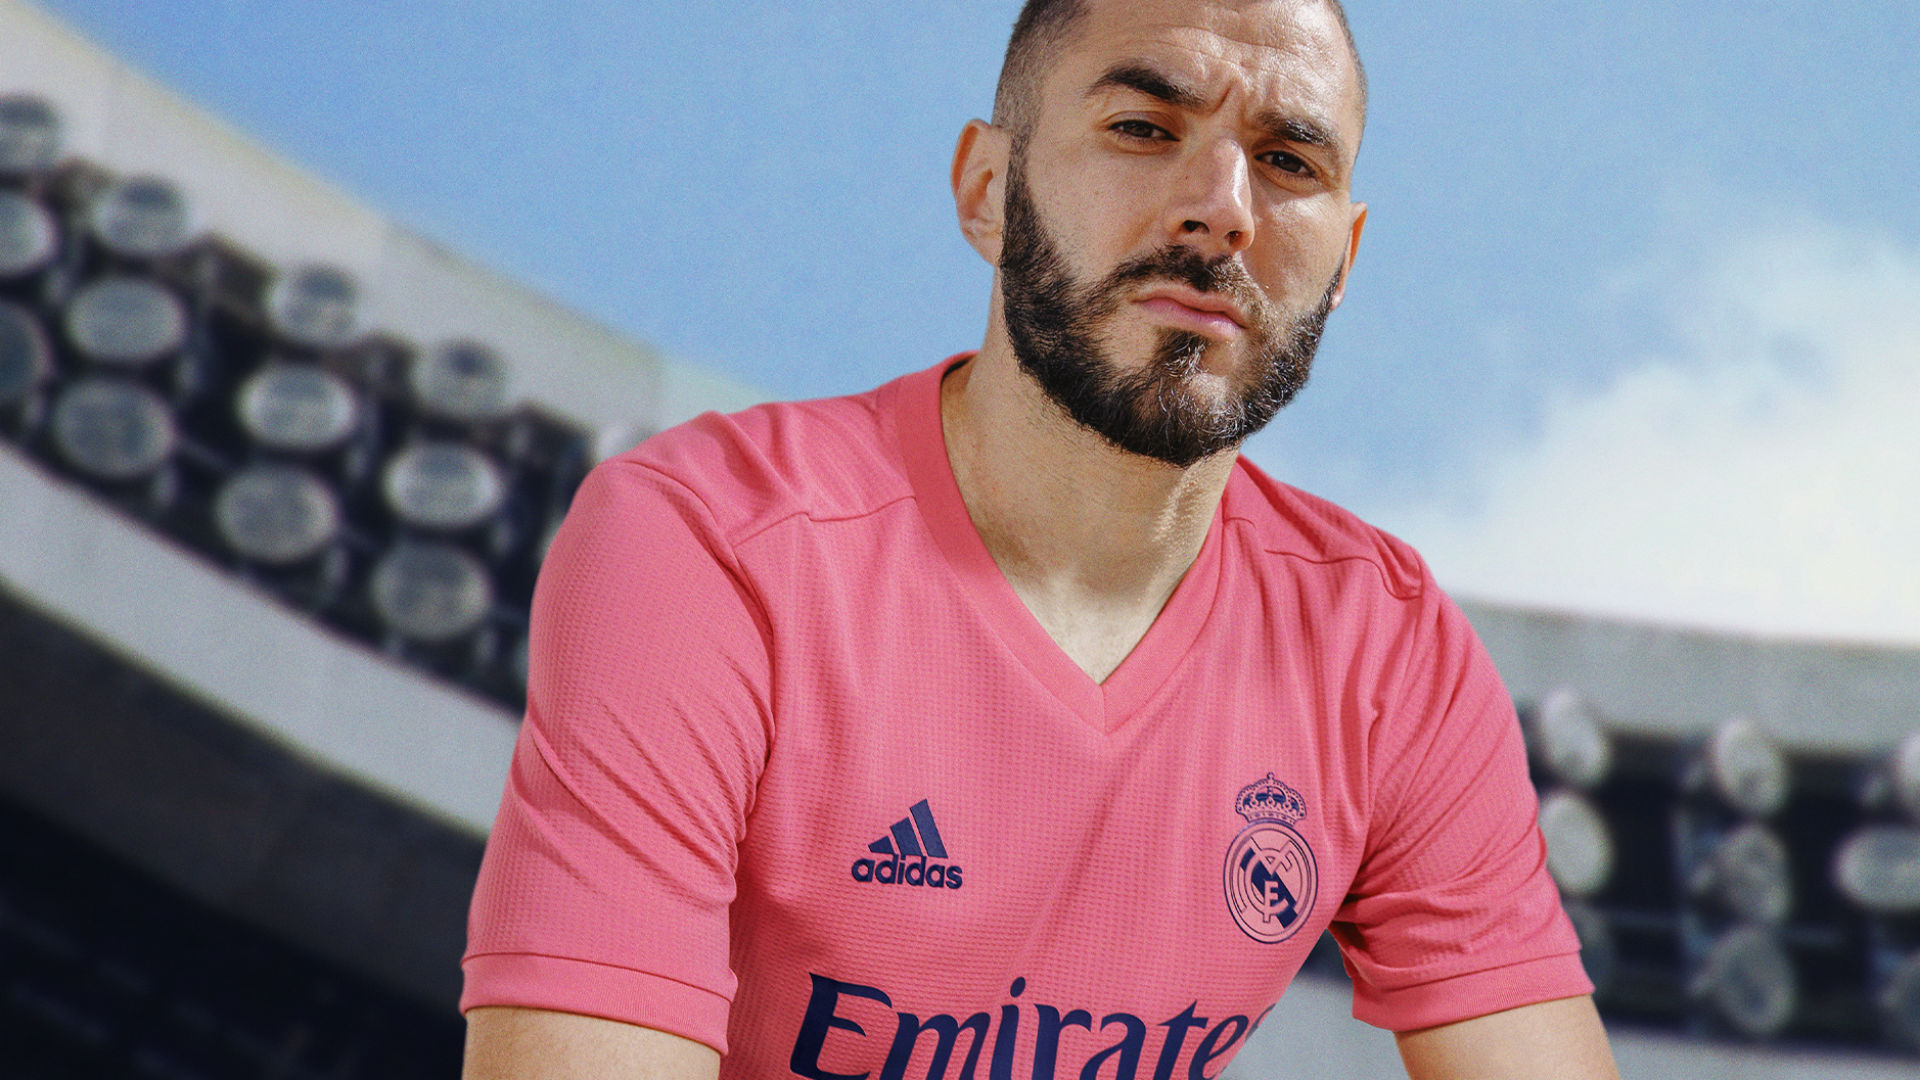 Ir al circuito Lugar de nacimiento fusión  Real Madrid's 2020-21 kit: New home and away jersey styles and release  dates | Goal.com